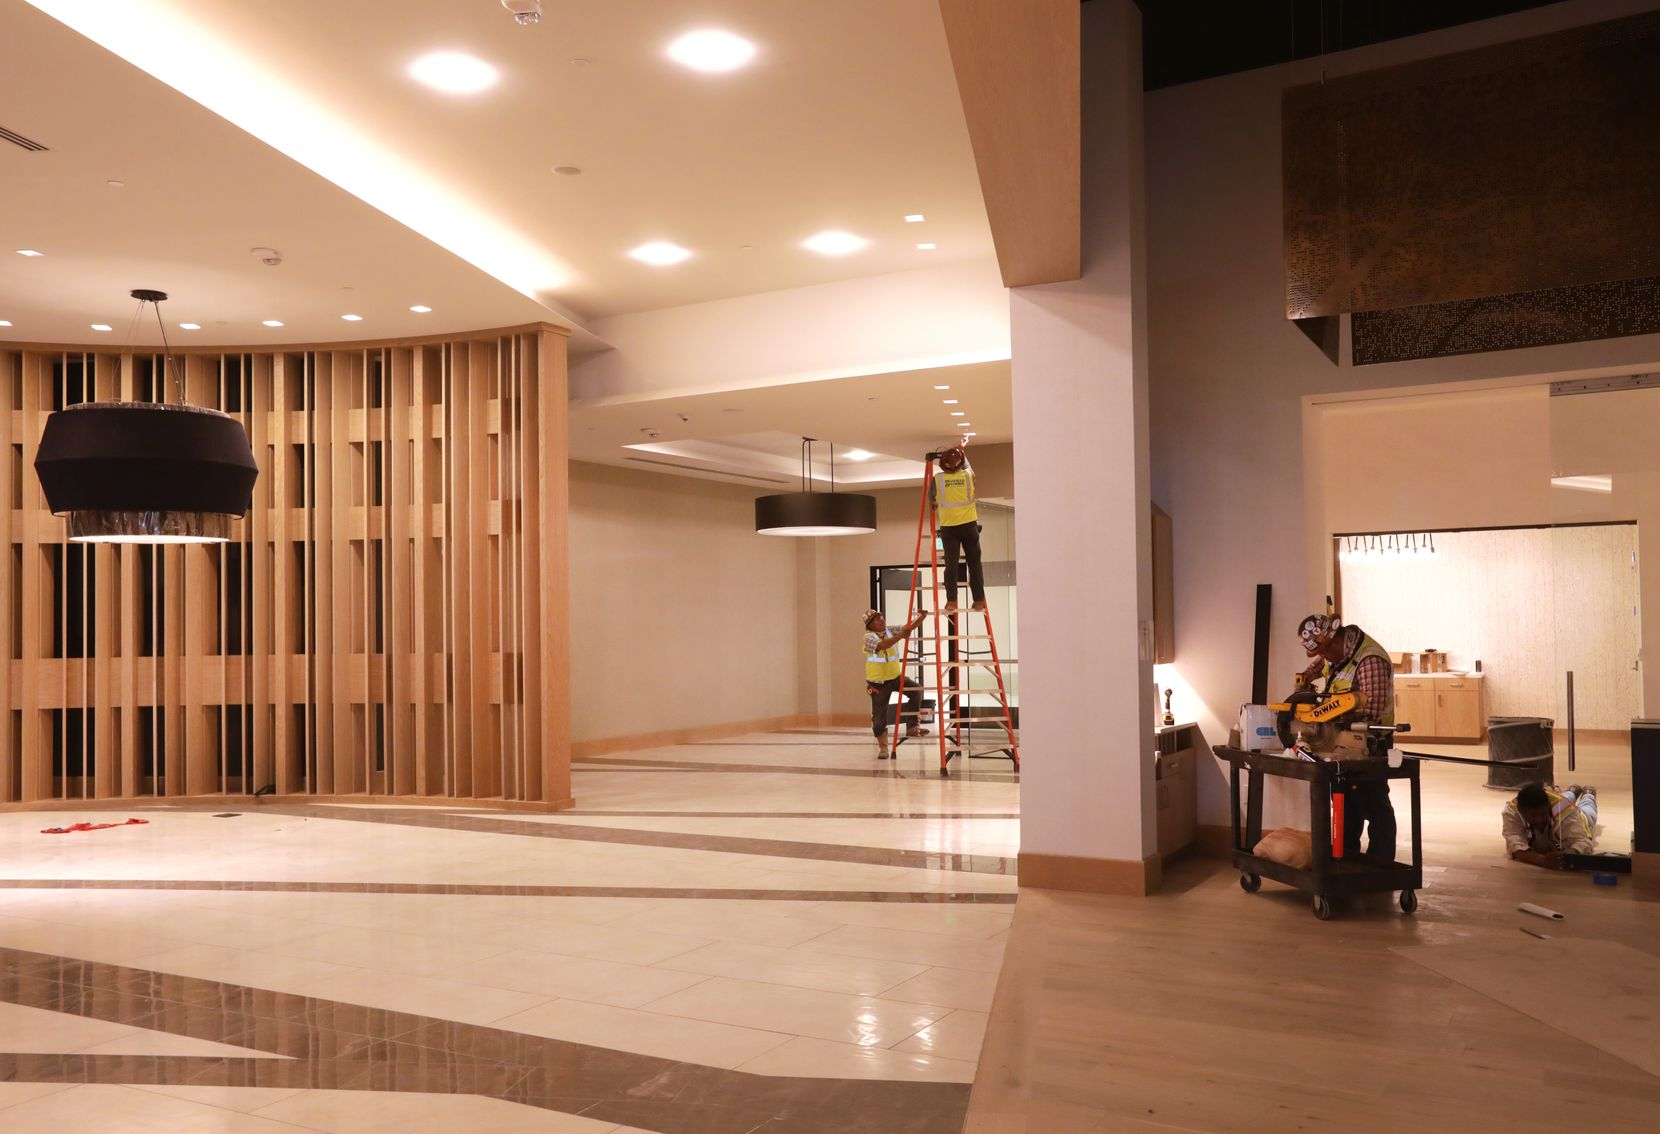 Workers put the finishing touches on the lobby and dining area of the Frisco Hyatt Regency.